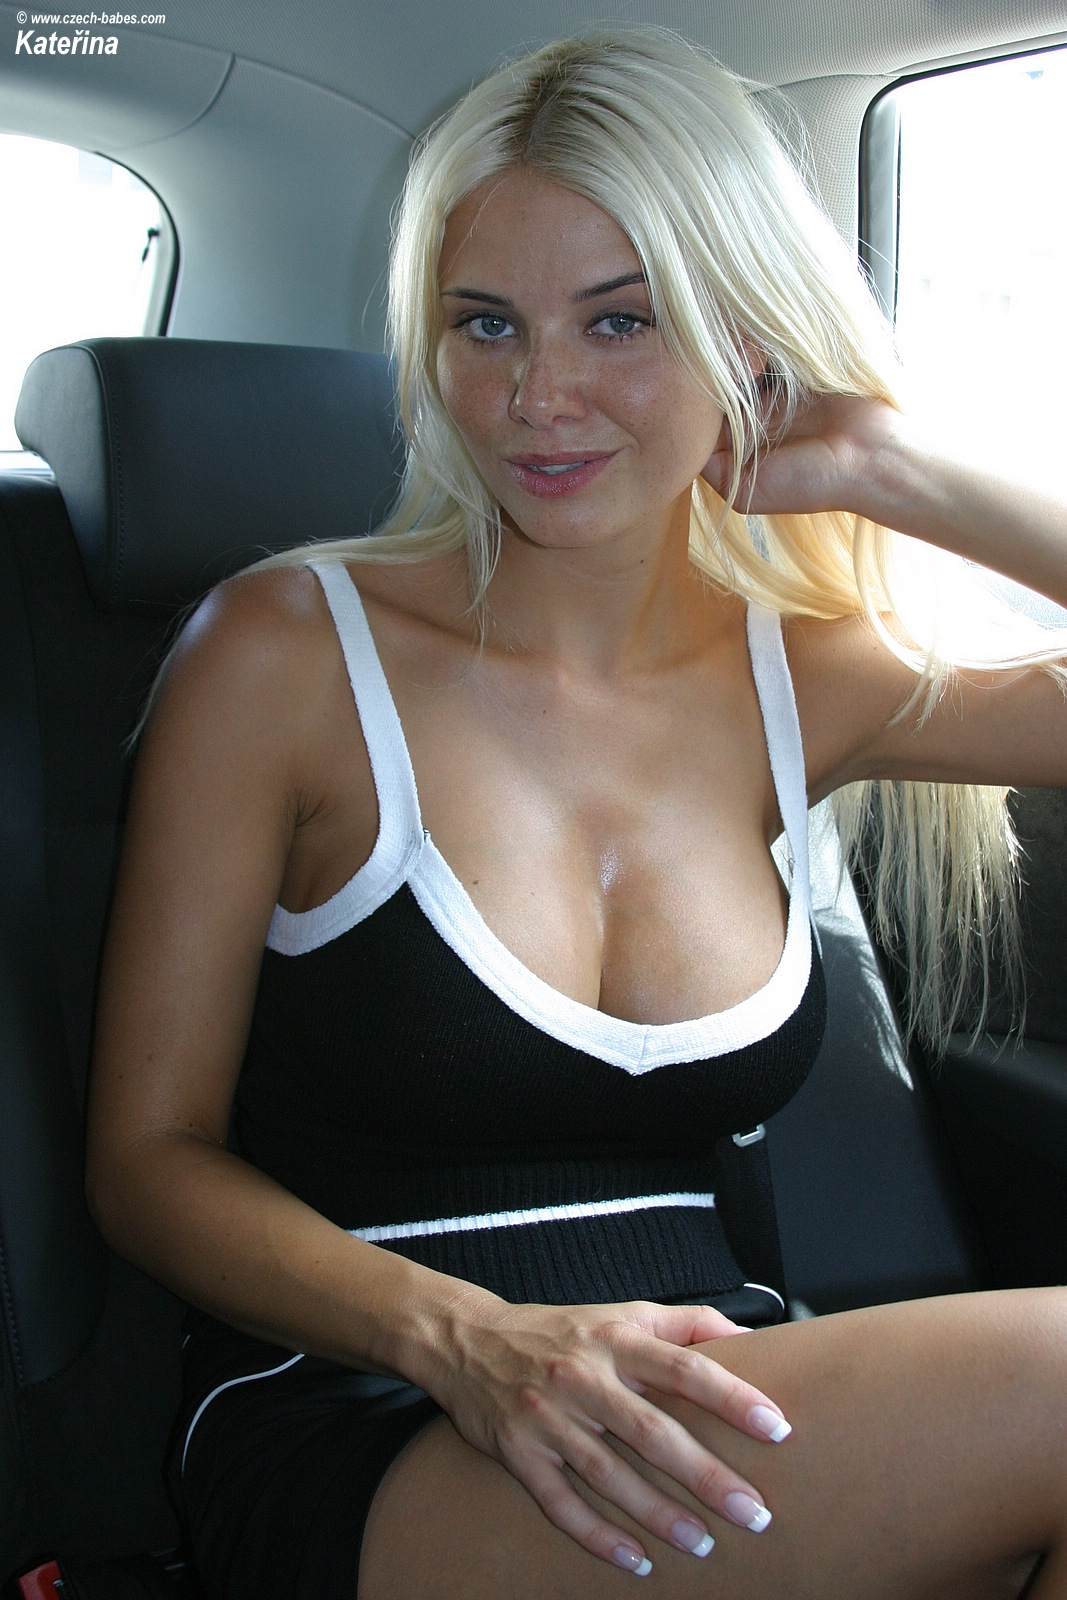 katerina-boobs-car-nude-czech-babes-07